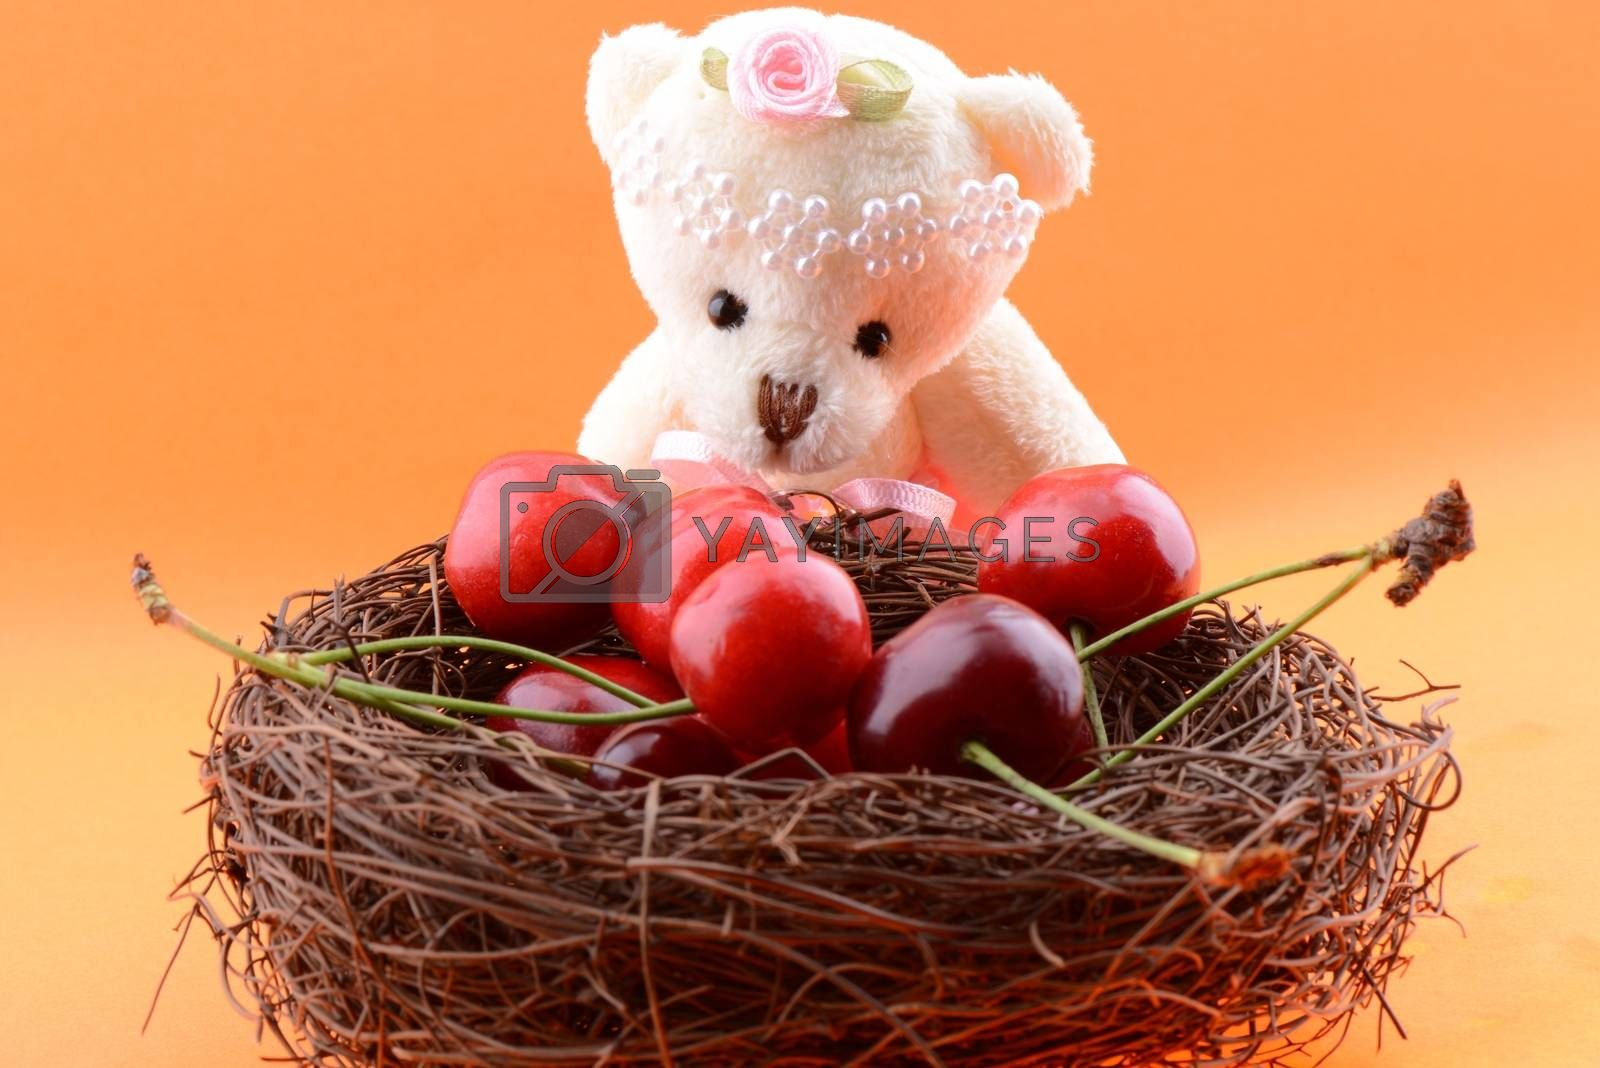 Toy teddy bear collecting Sweet cherries isolated on an orange background